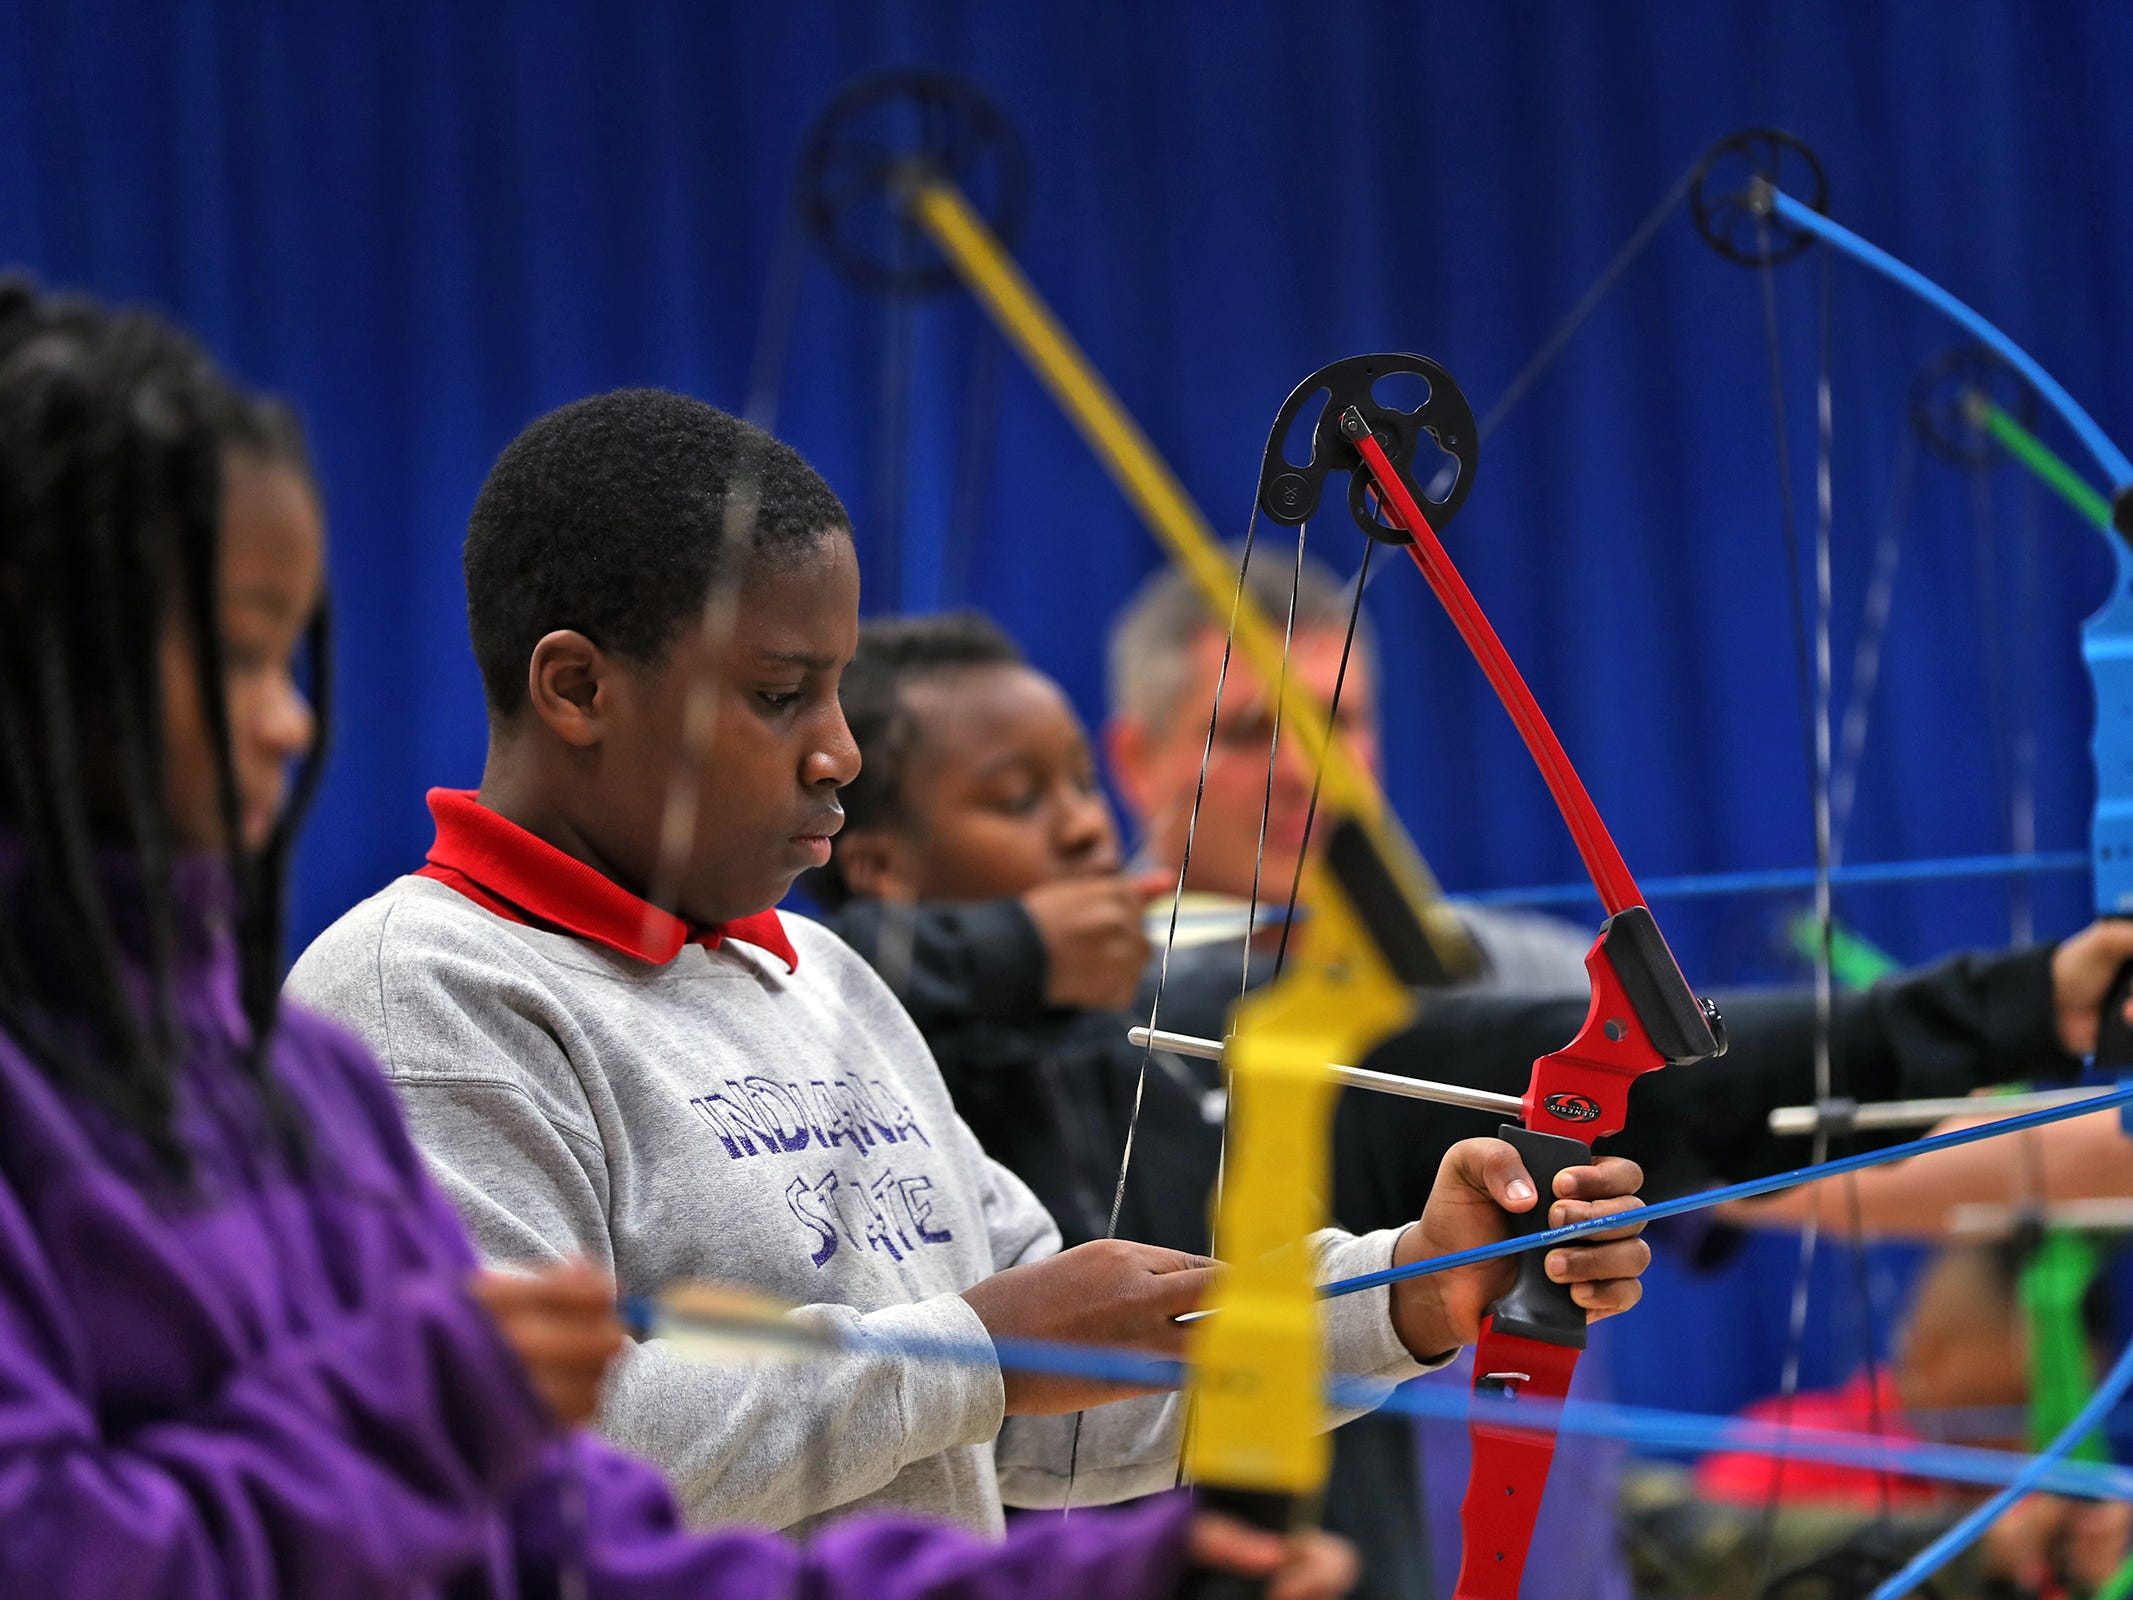 Sixth graders prepare to take aim, during archery class at Lew Wallace Elementary IPS 107, Thursday, Dec. 20, 2018.